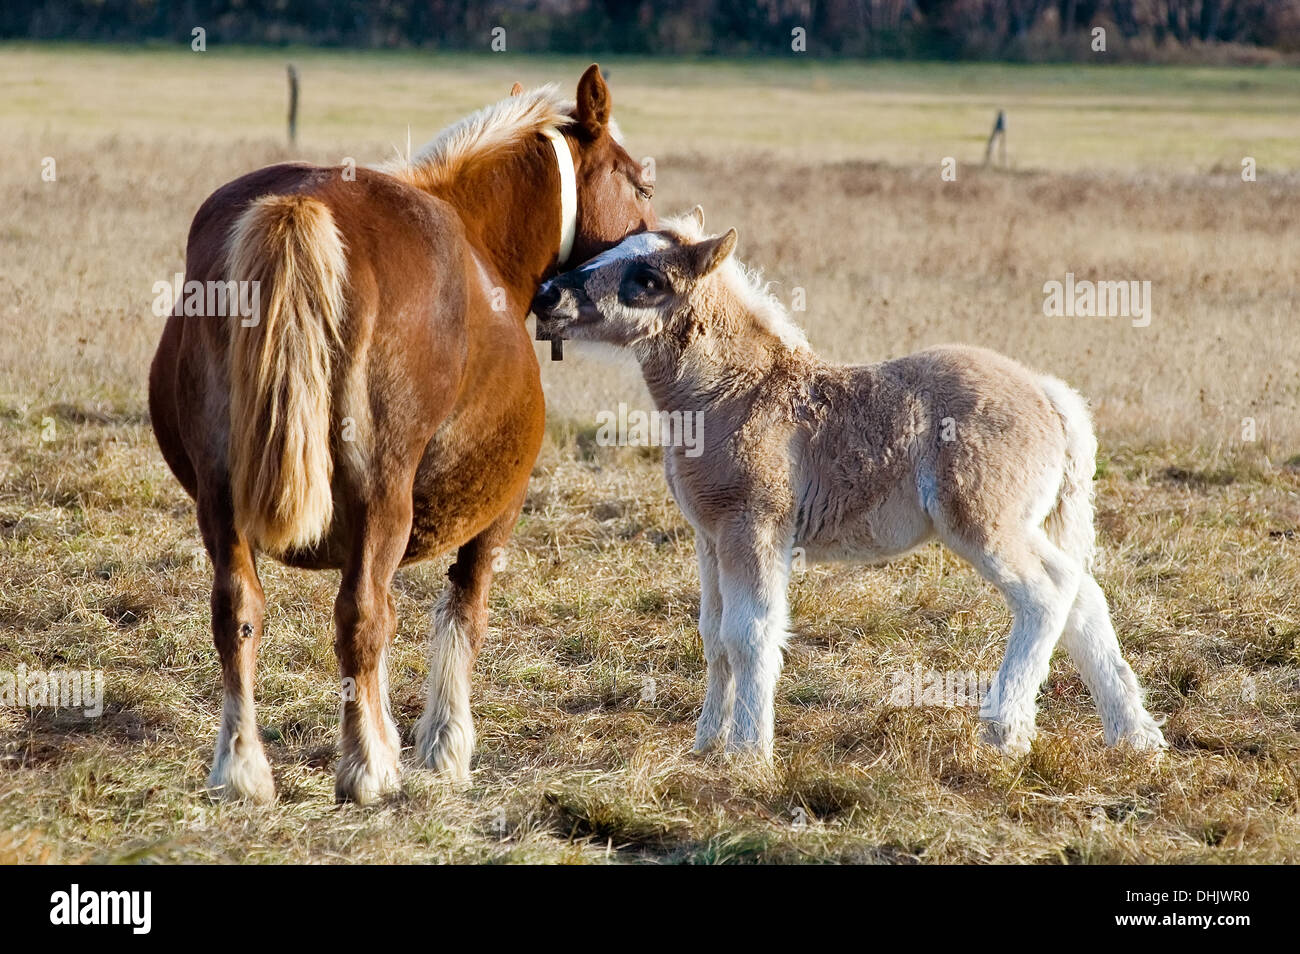 Horses, Mother and young, Pyrenees, Spain Stock Photo